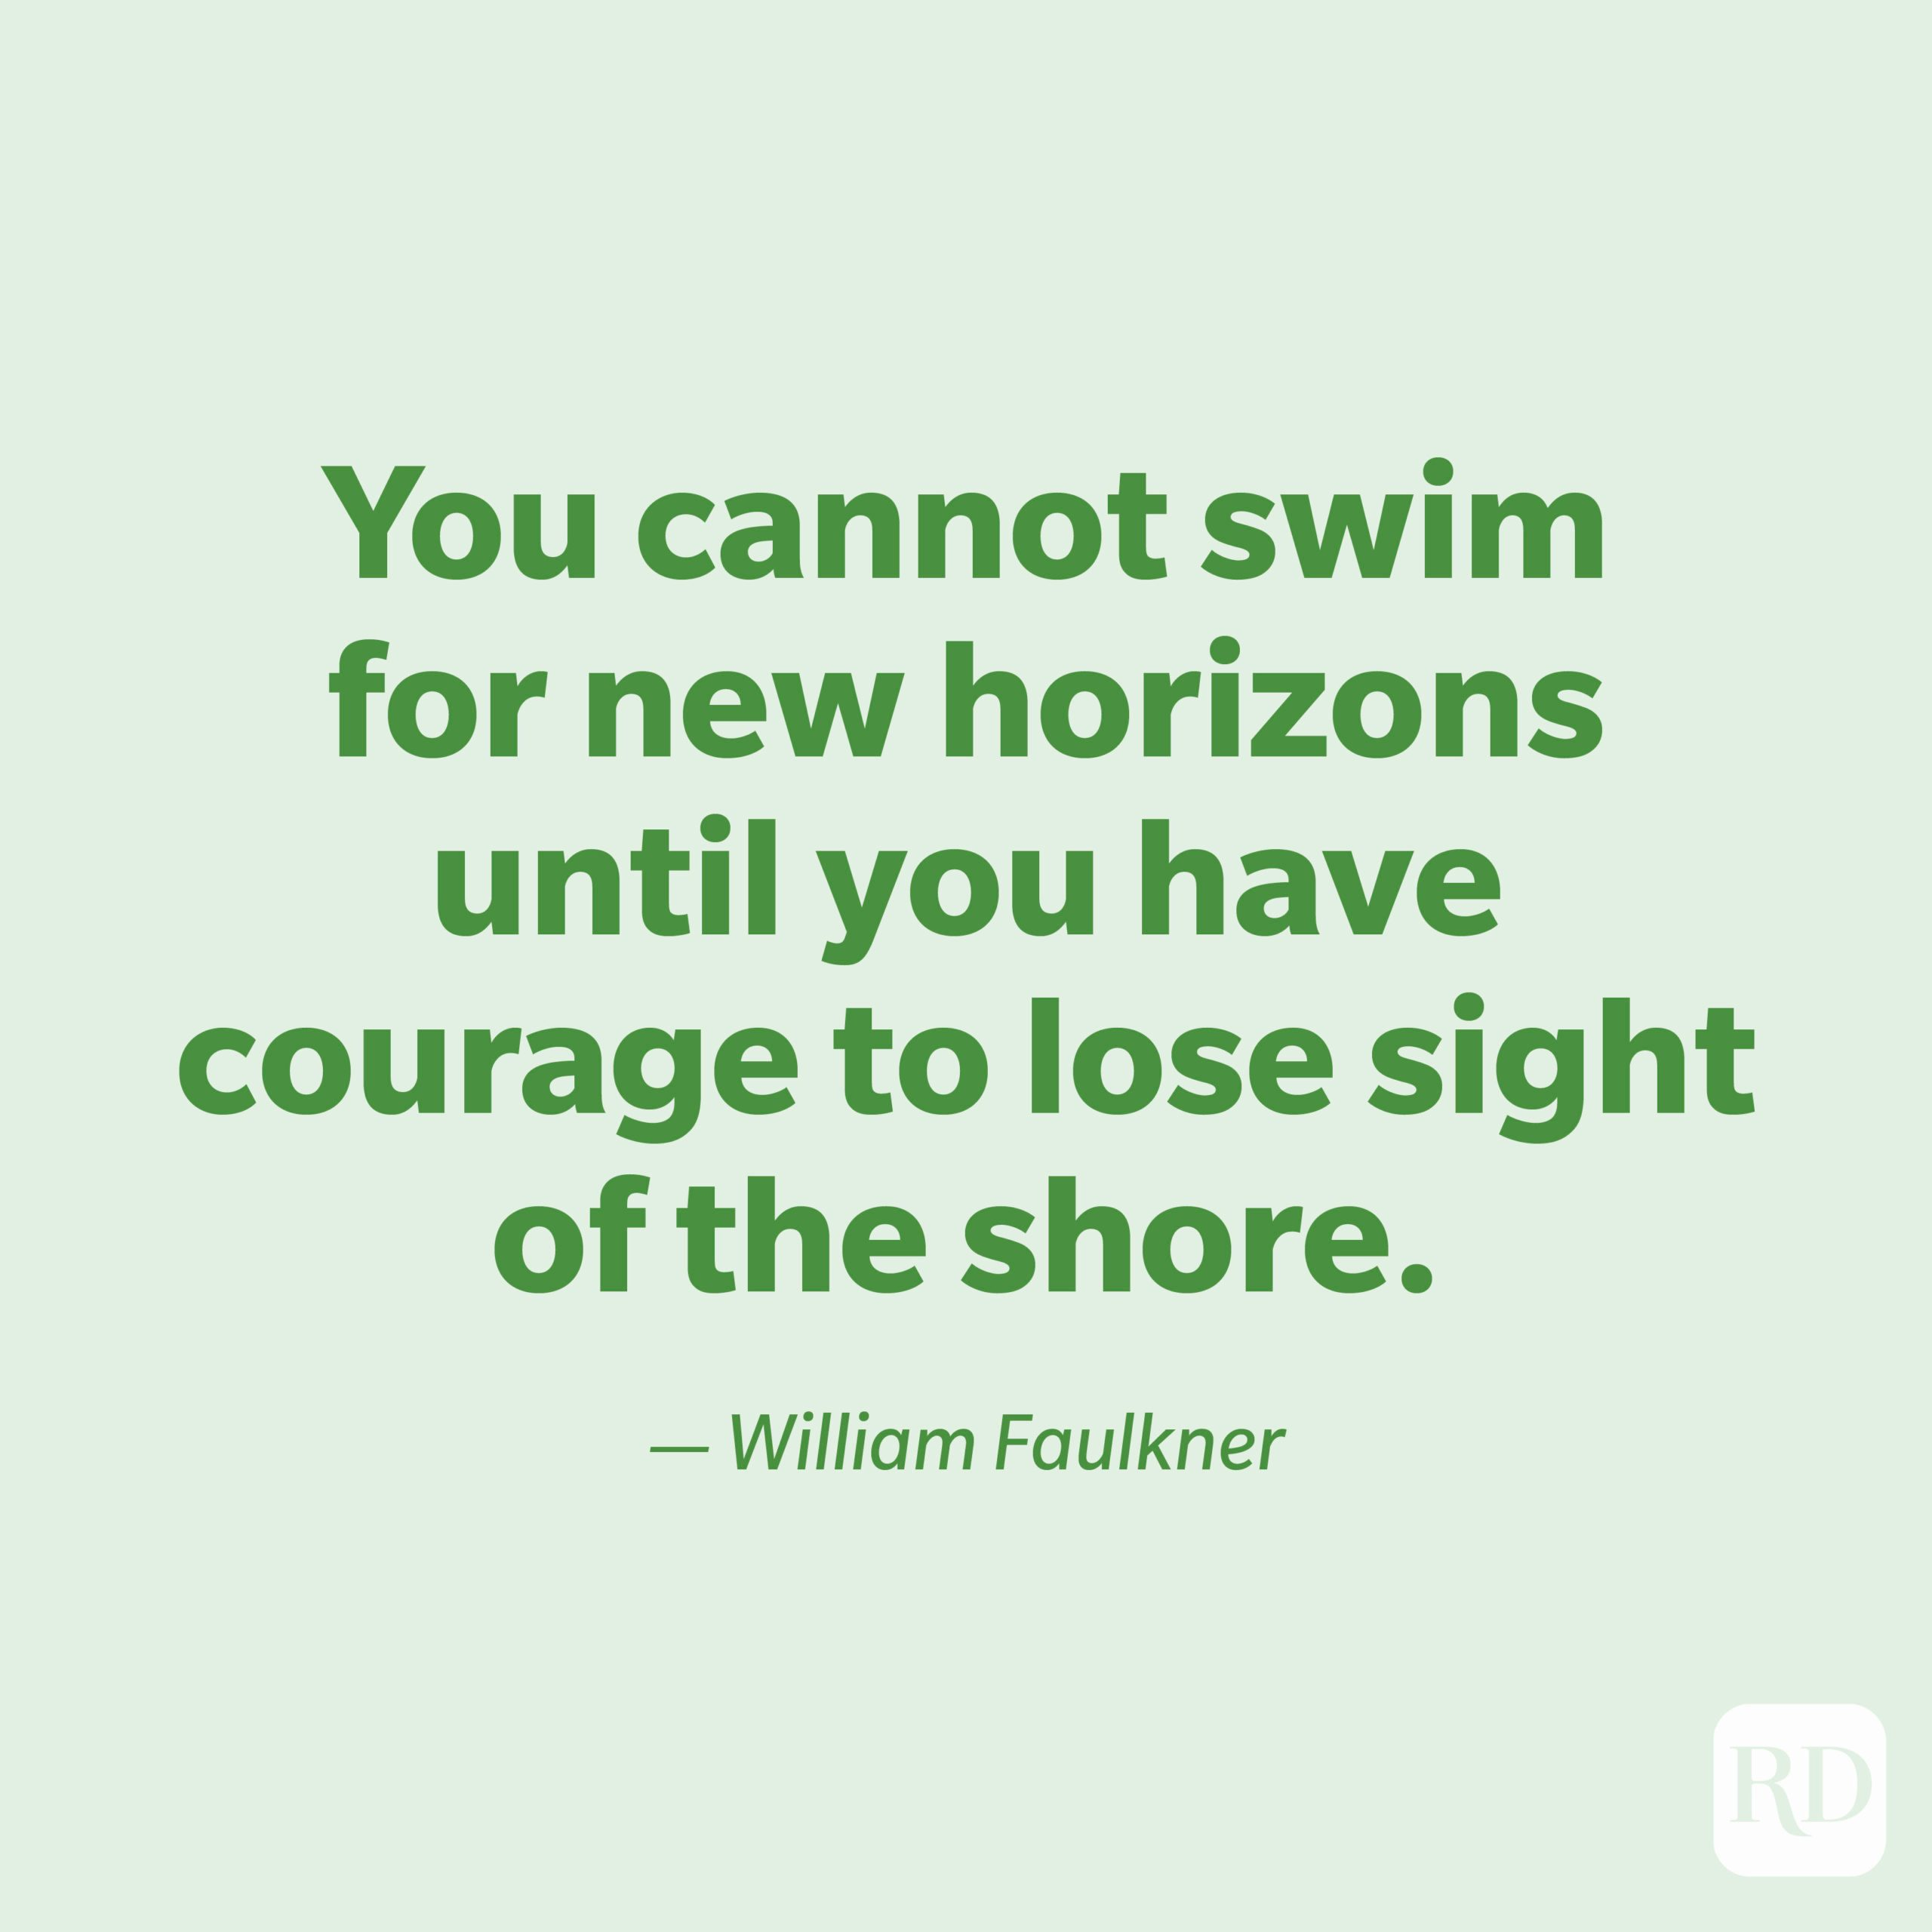 """""""You cannot swim for new horizons until you have courage to lose sight of the shore."""" —William Faulkner."""